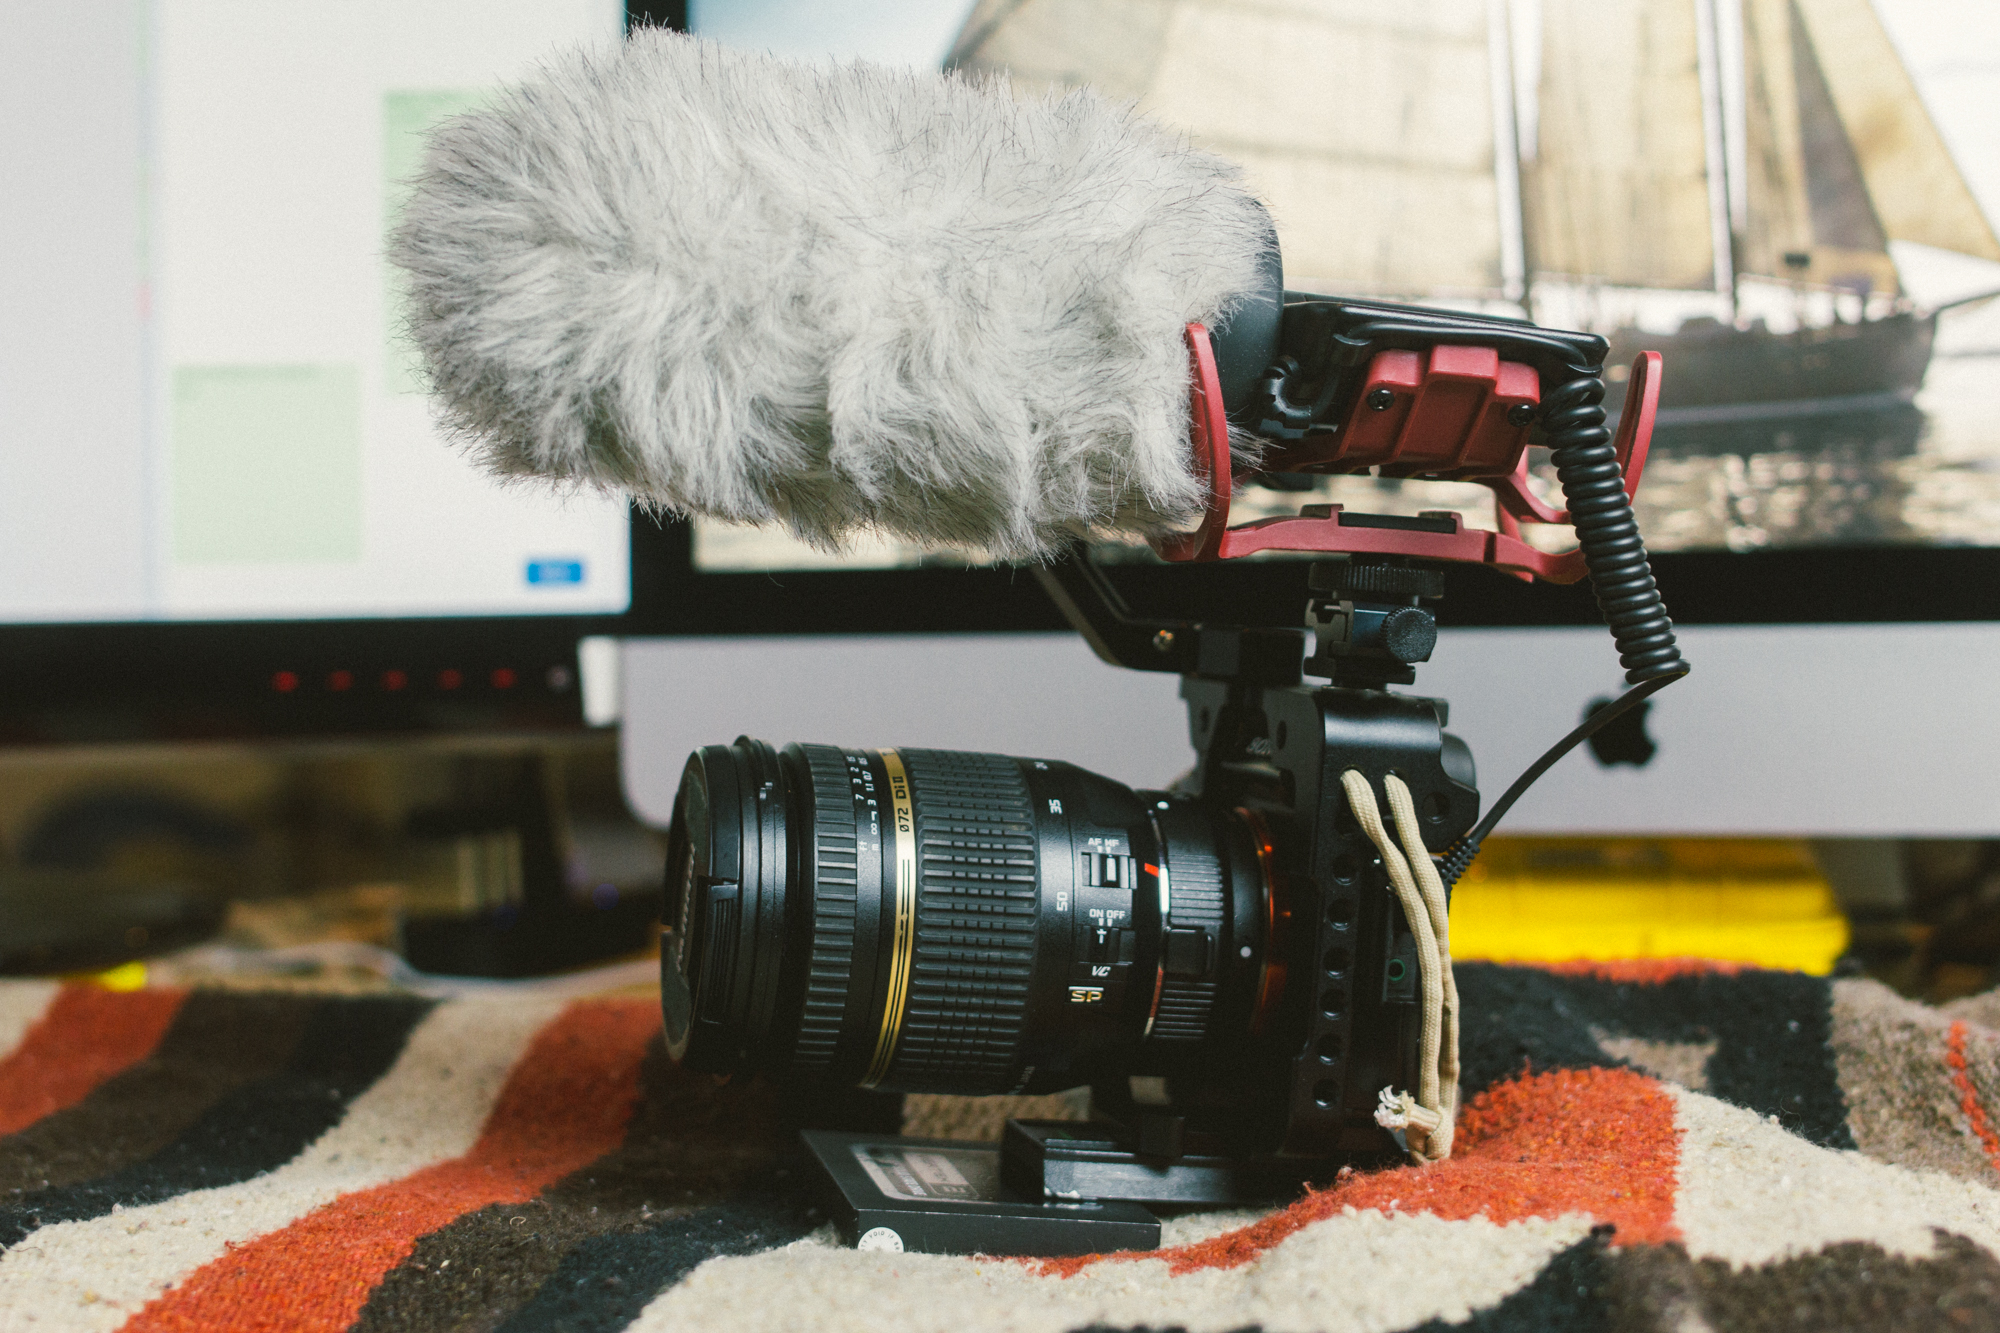 Sony A7s Rig up